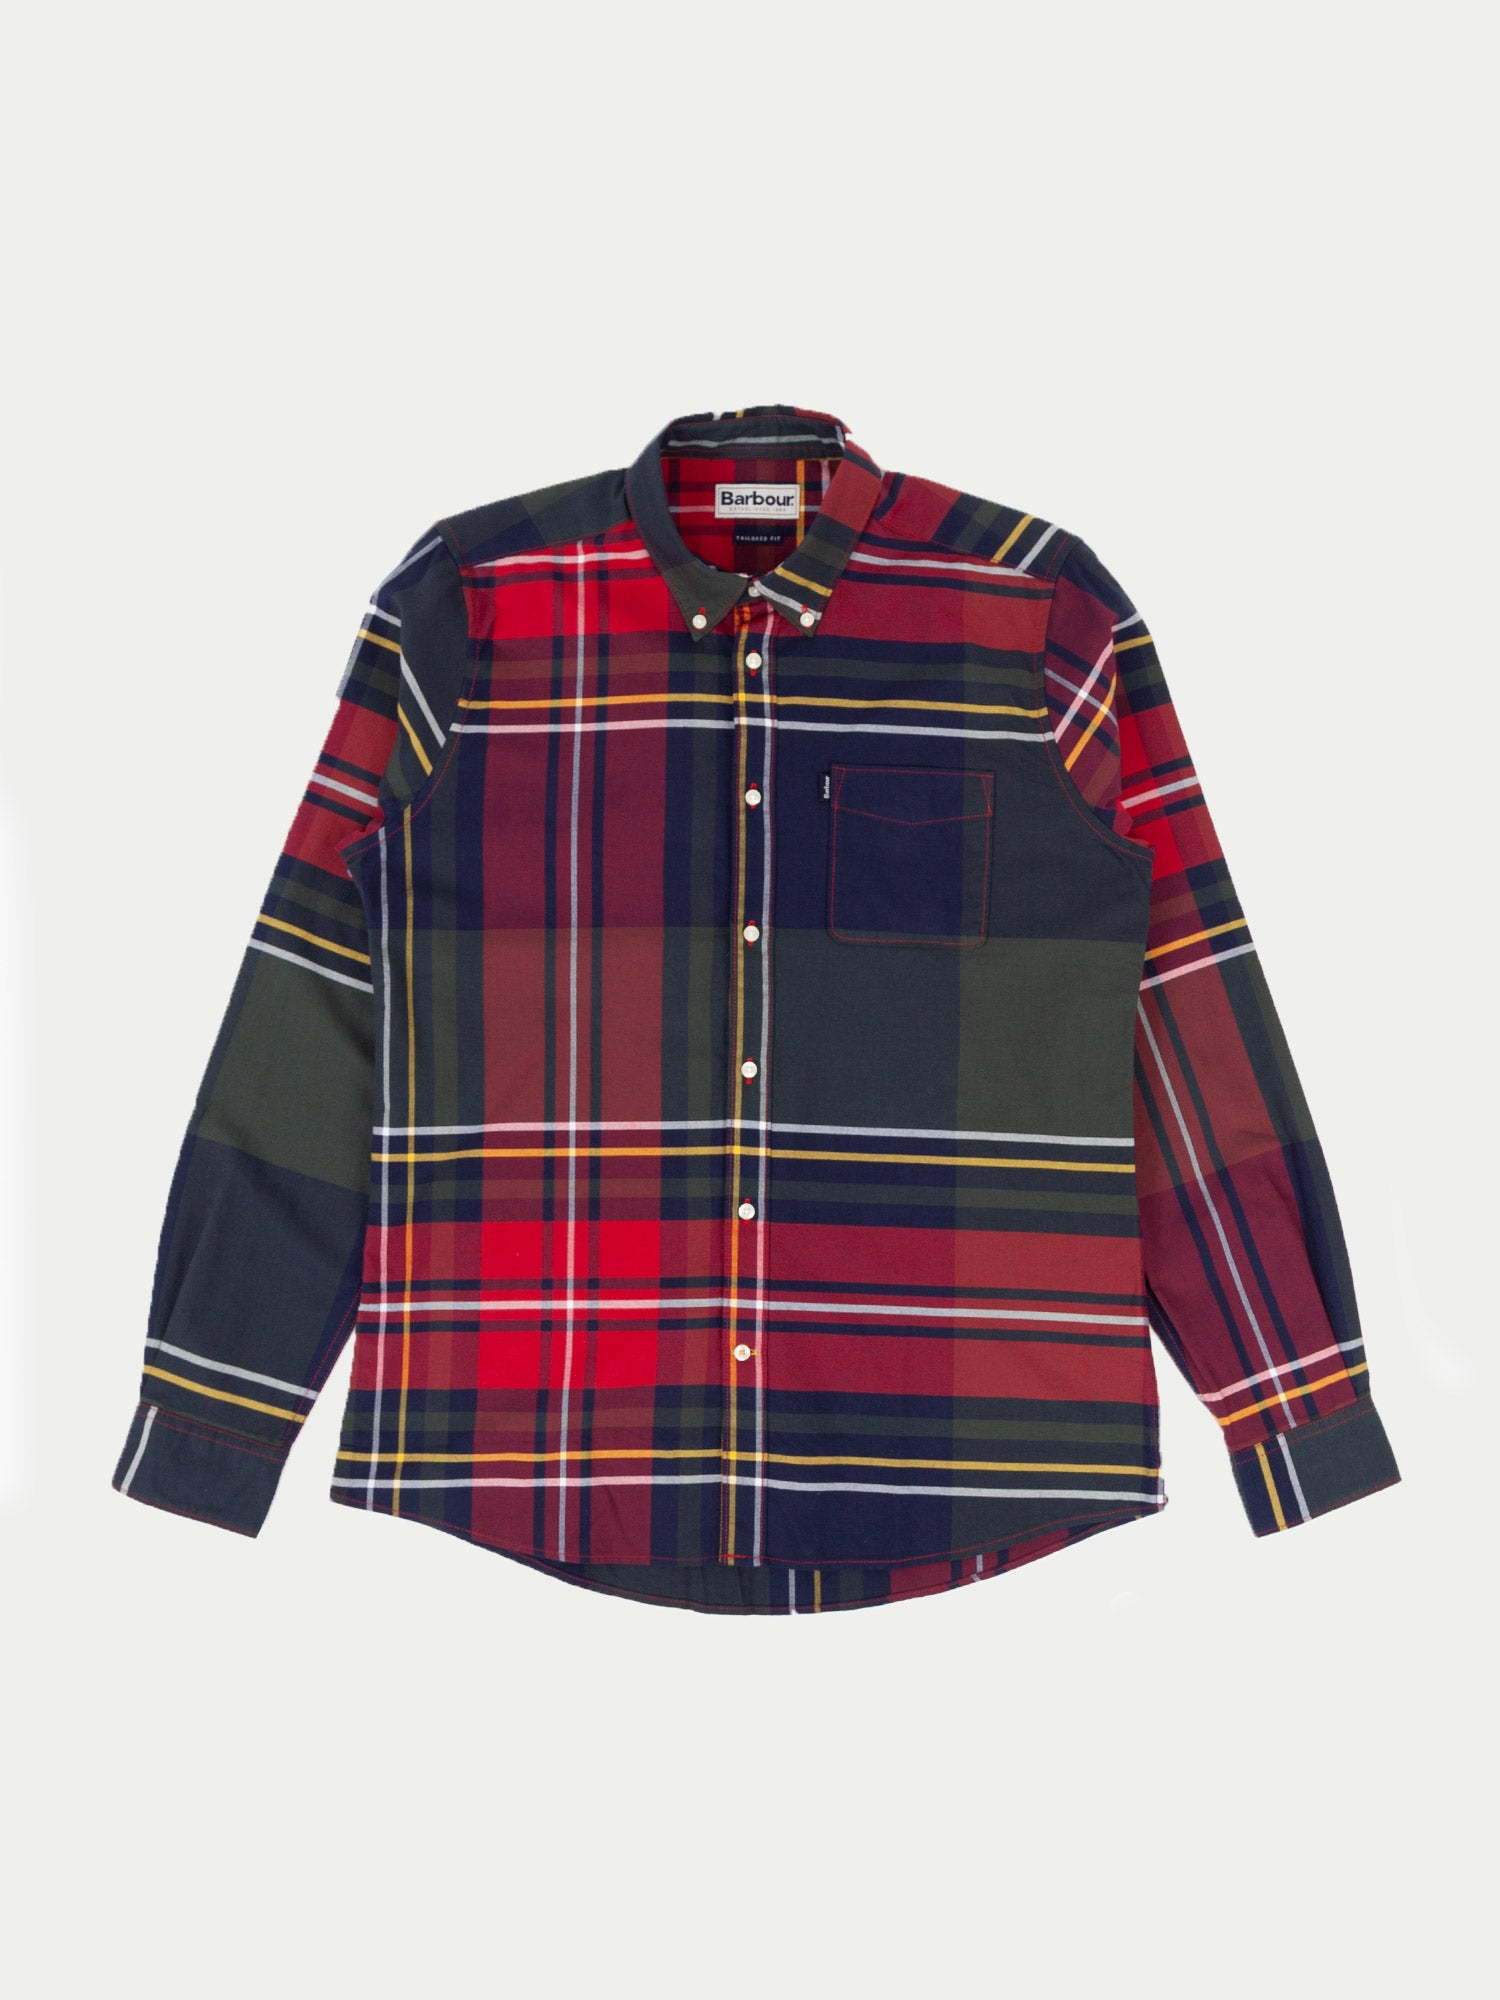 Barbour Highland Shirt (Navy) 1